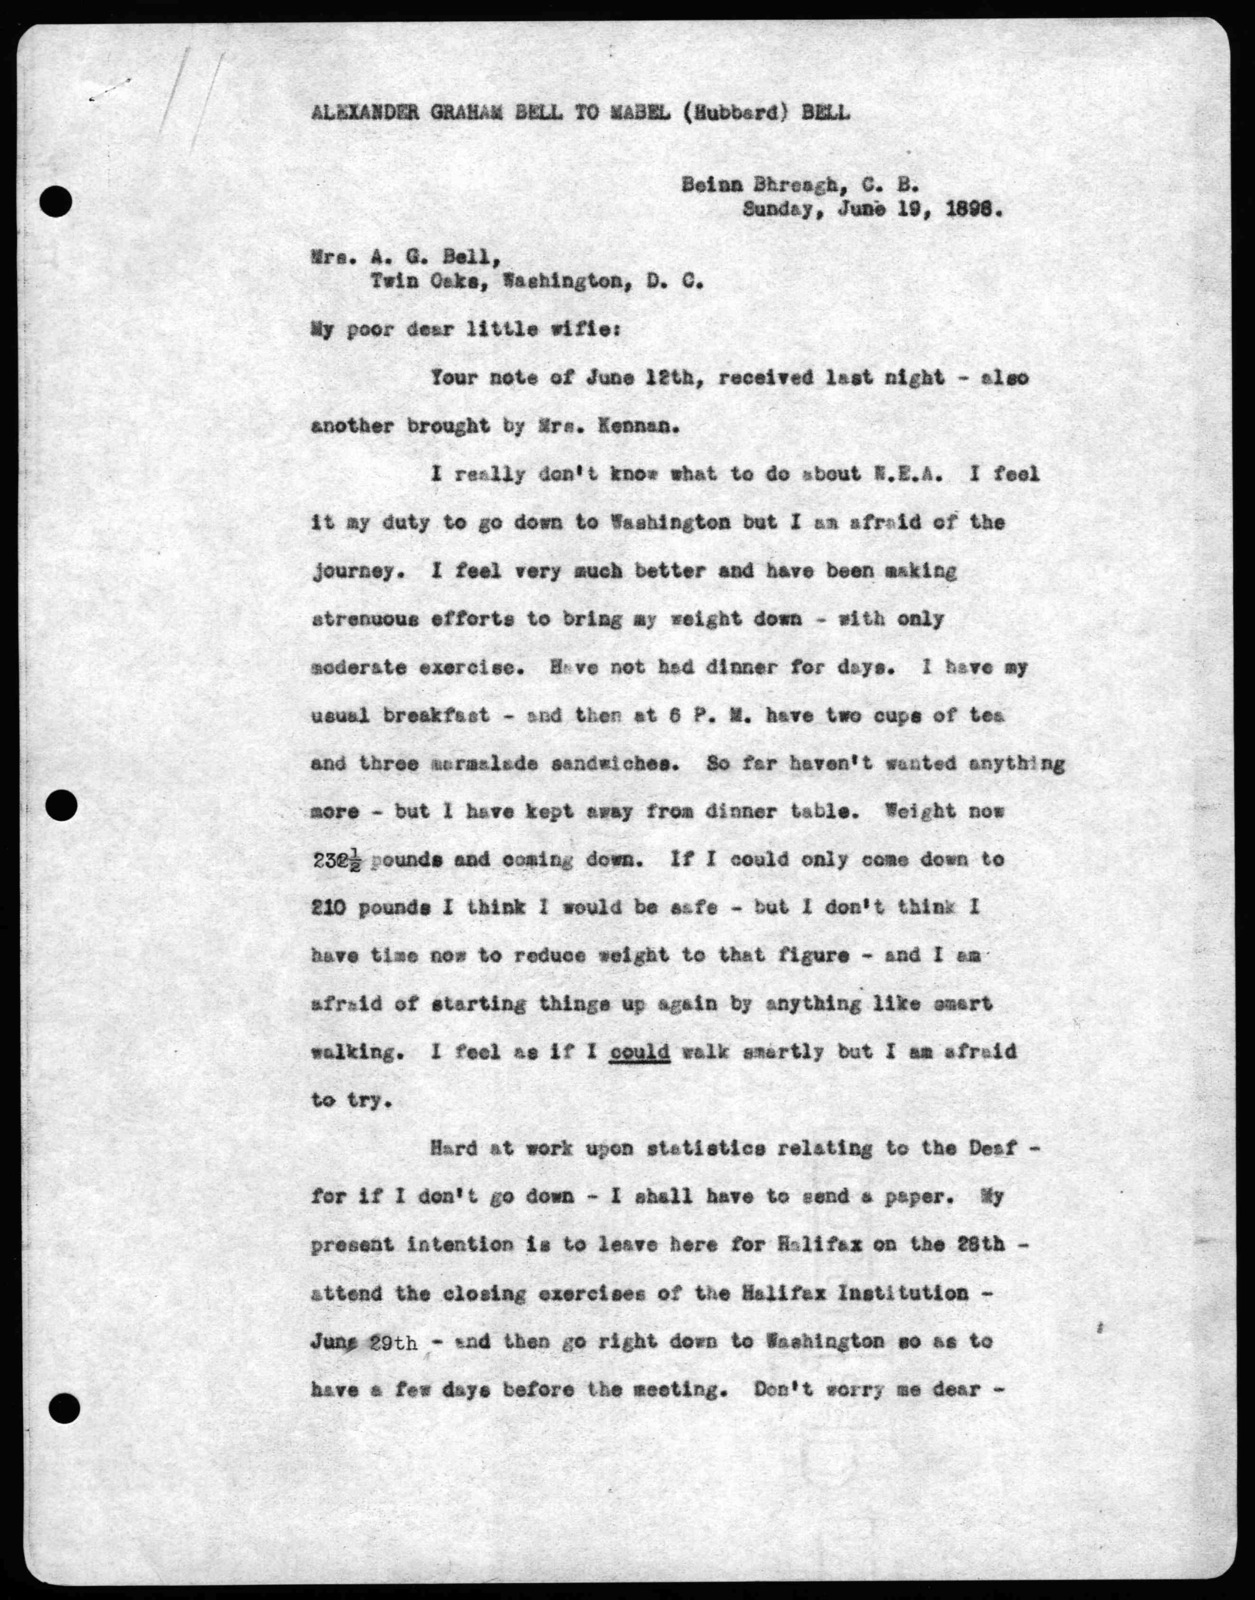 Letter from Alexander Graham Bell to Mabel Hubbard Bell, June 19, 1898